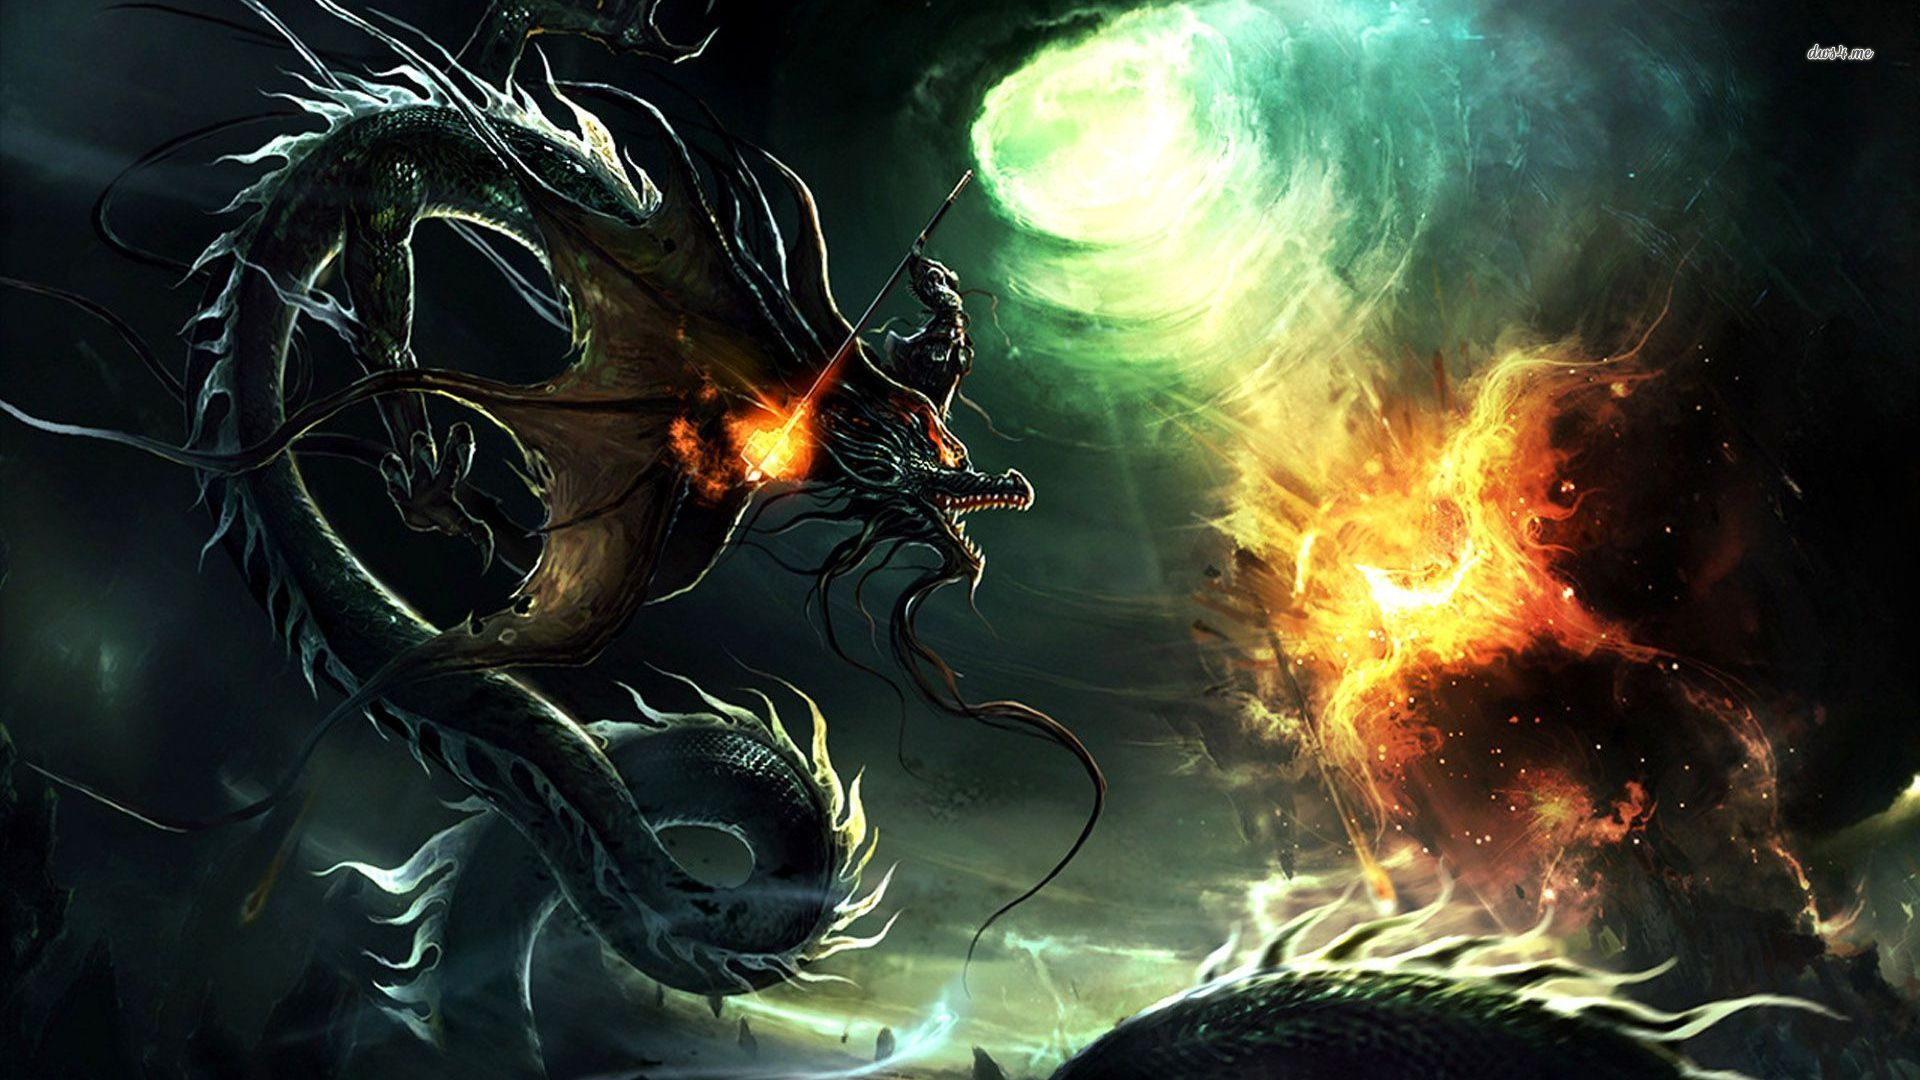 1920 x 1080 dragon wallpaper wallpapersafari